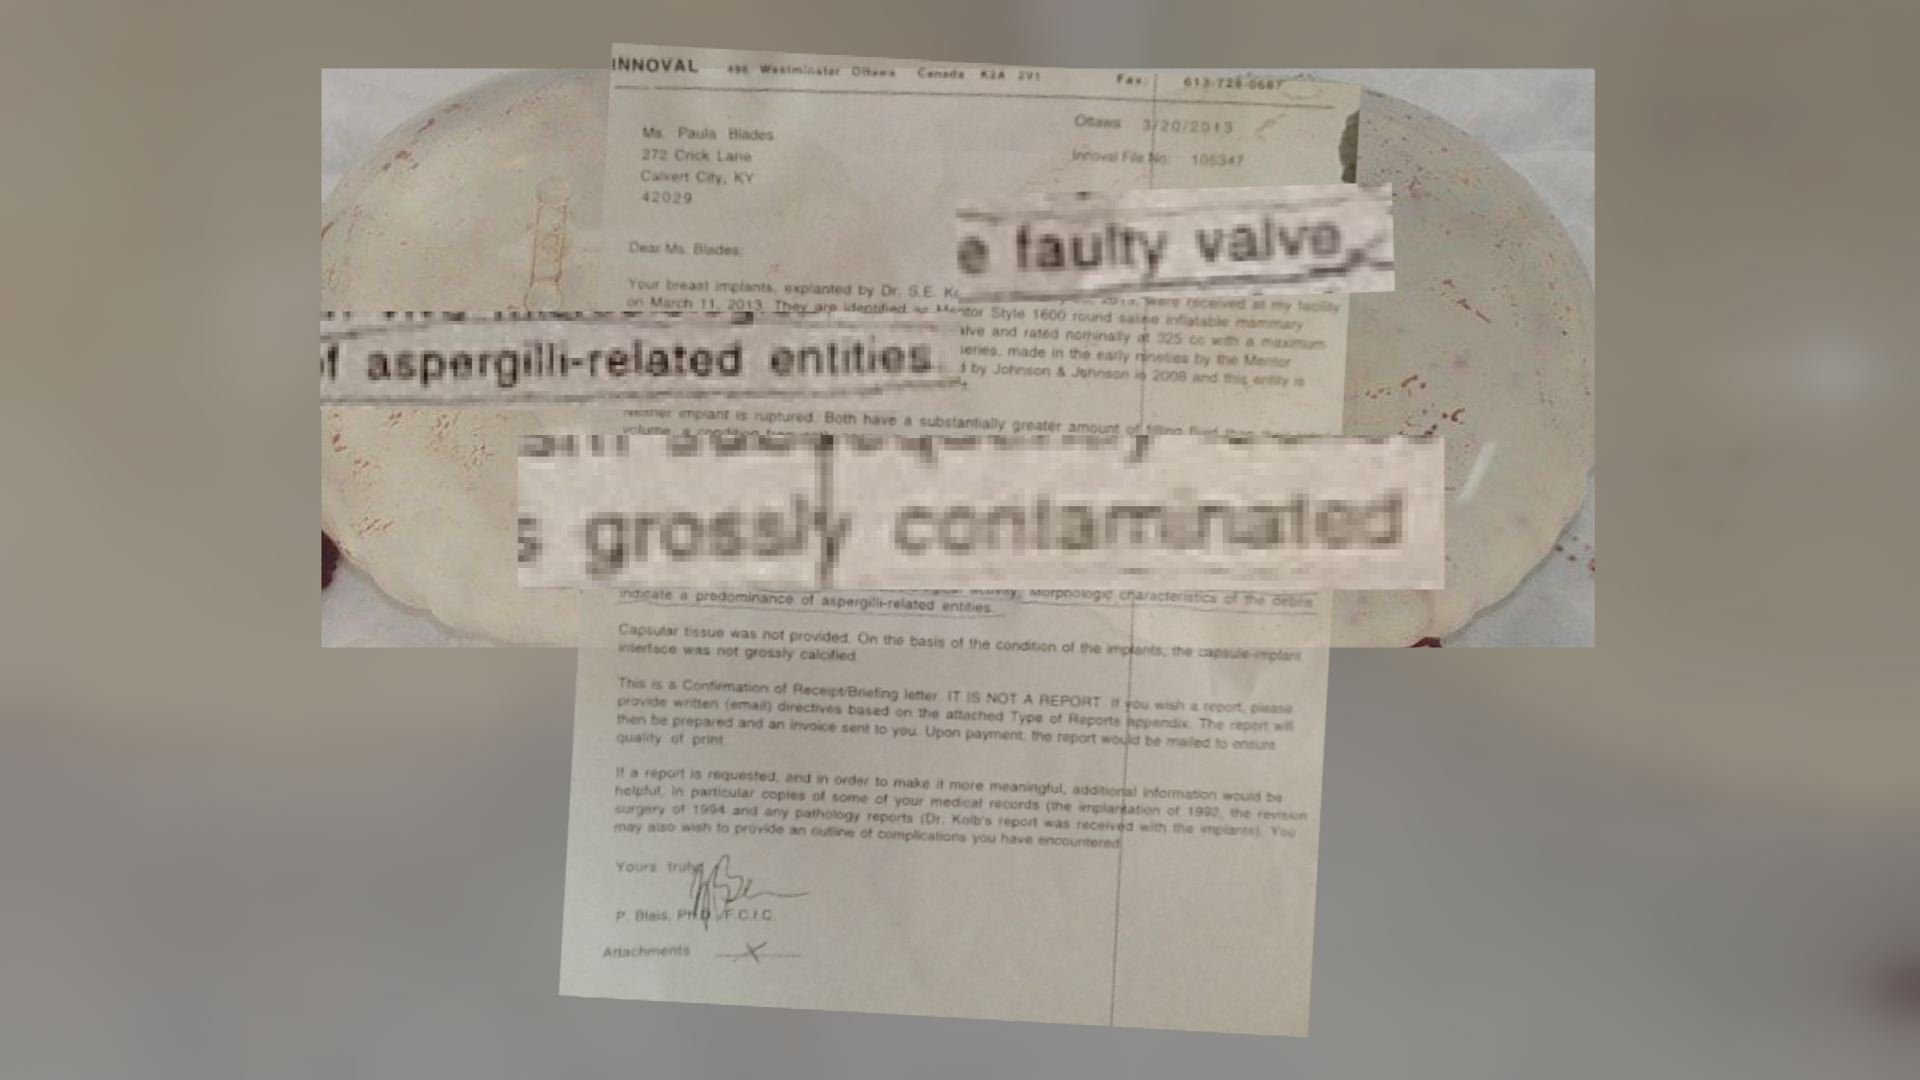 Dr. P. Blais with Innoval Failure Analysis in Ottawa, Canada tested Paula Blades' implants and detected aspergillus mold.